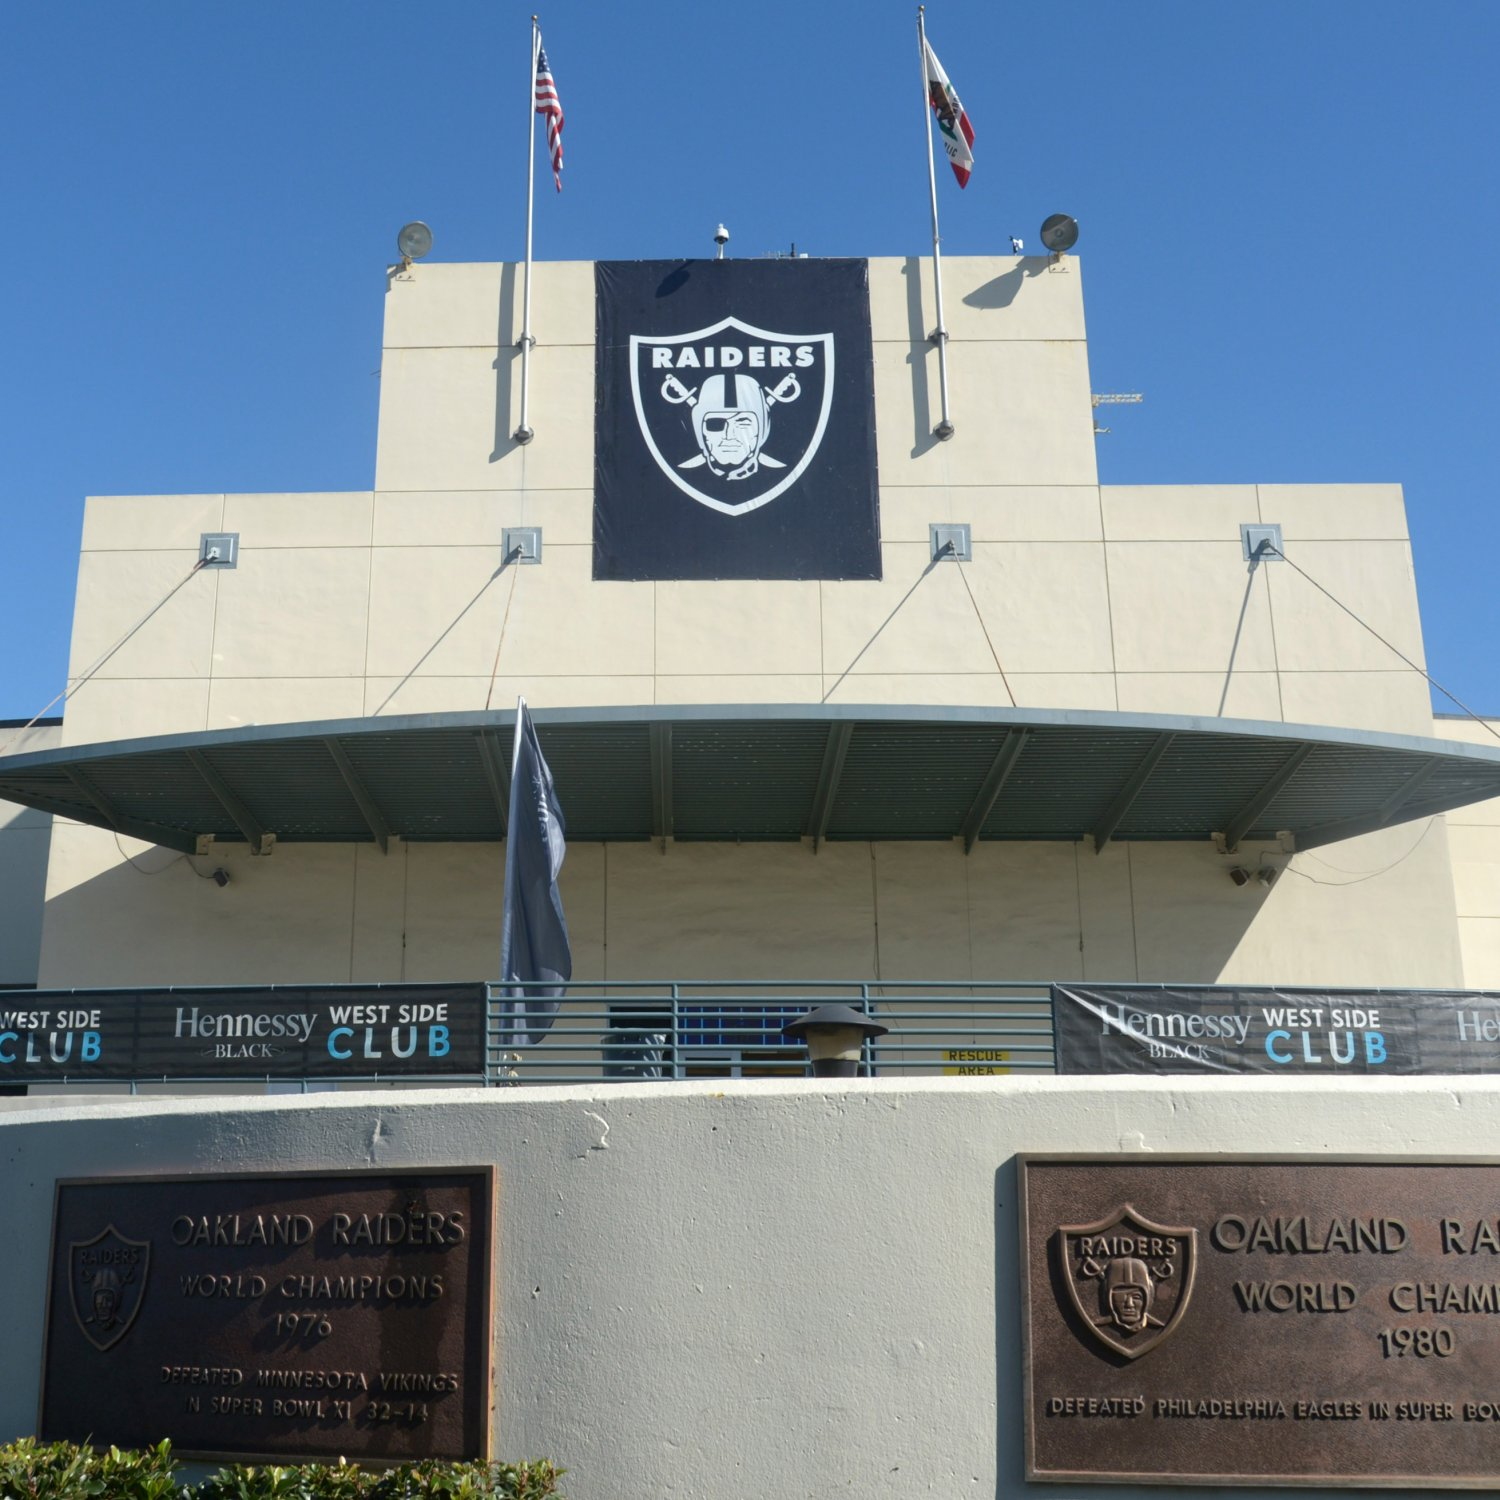 Raiders New Stadium: Roger Goodell Claims NFL Would Assist Oakland Raiders With